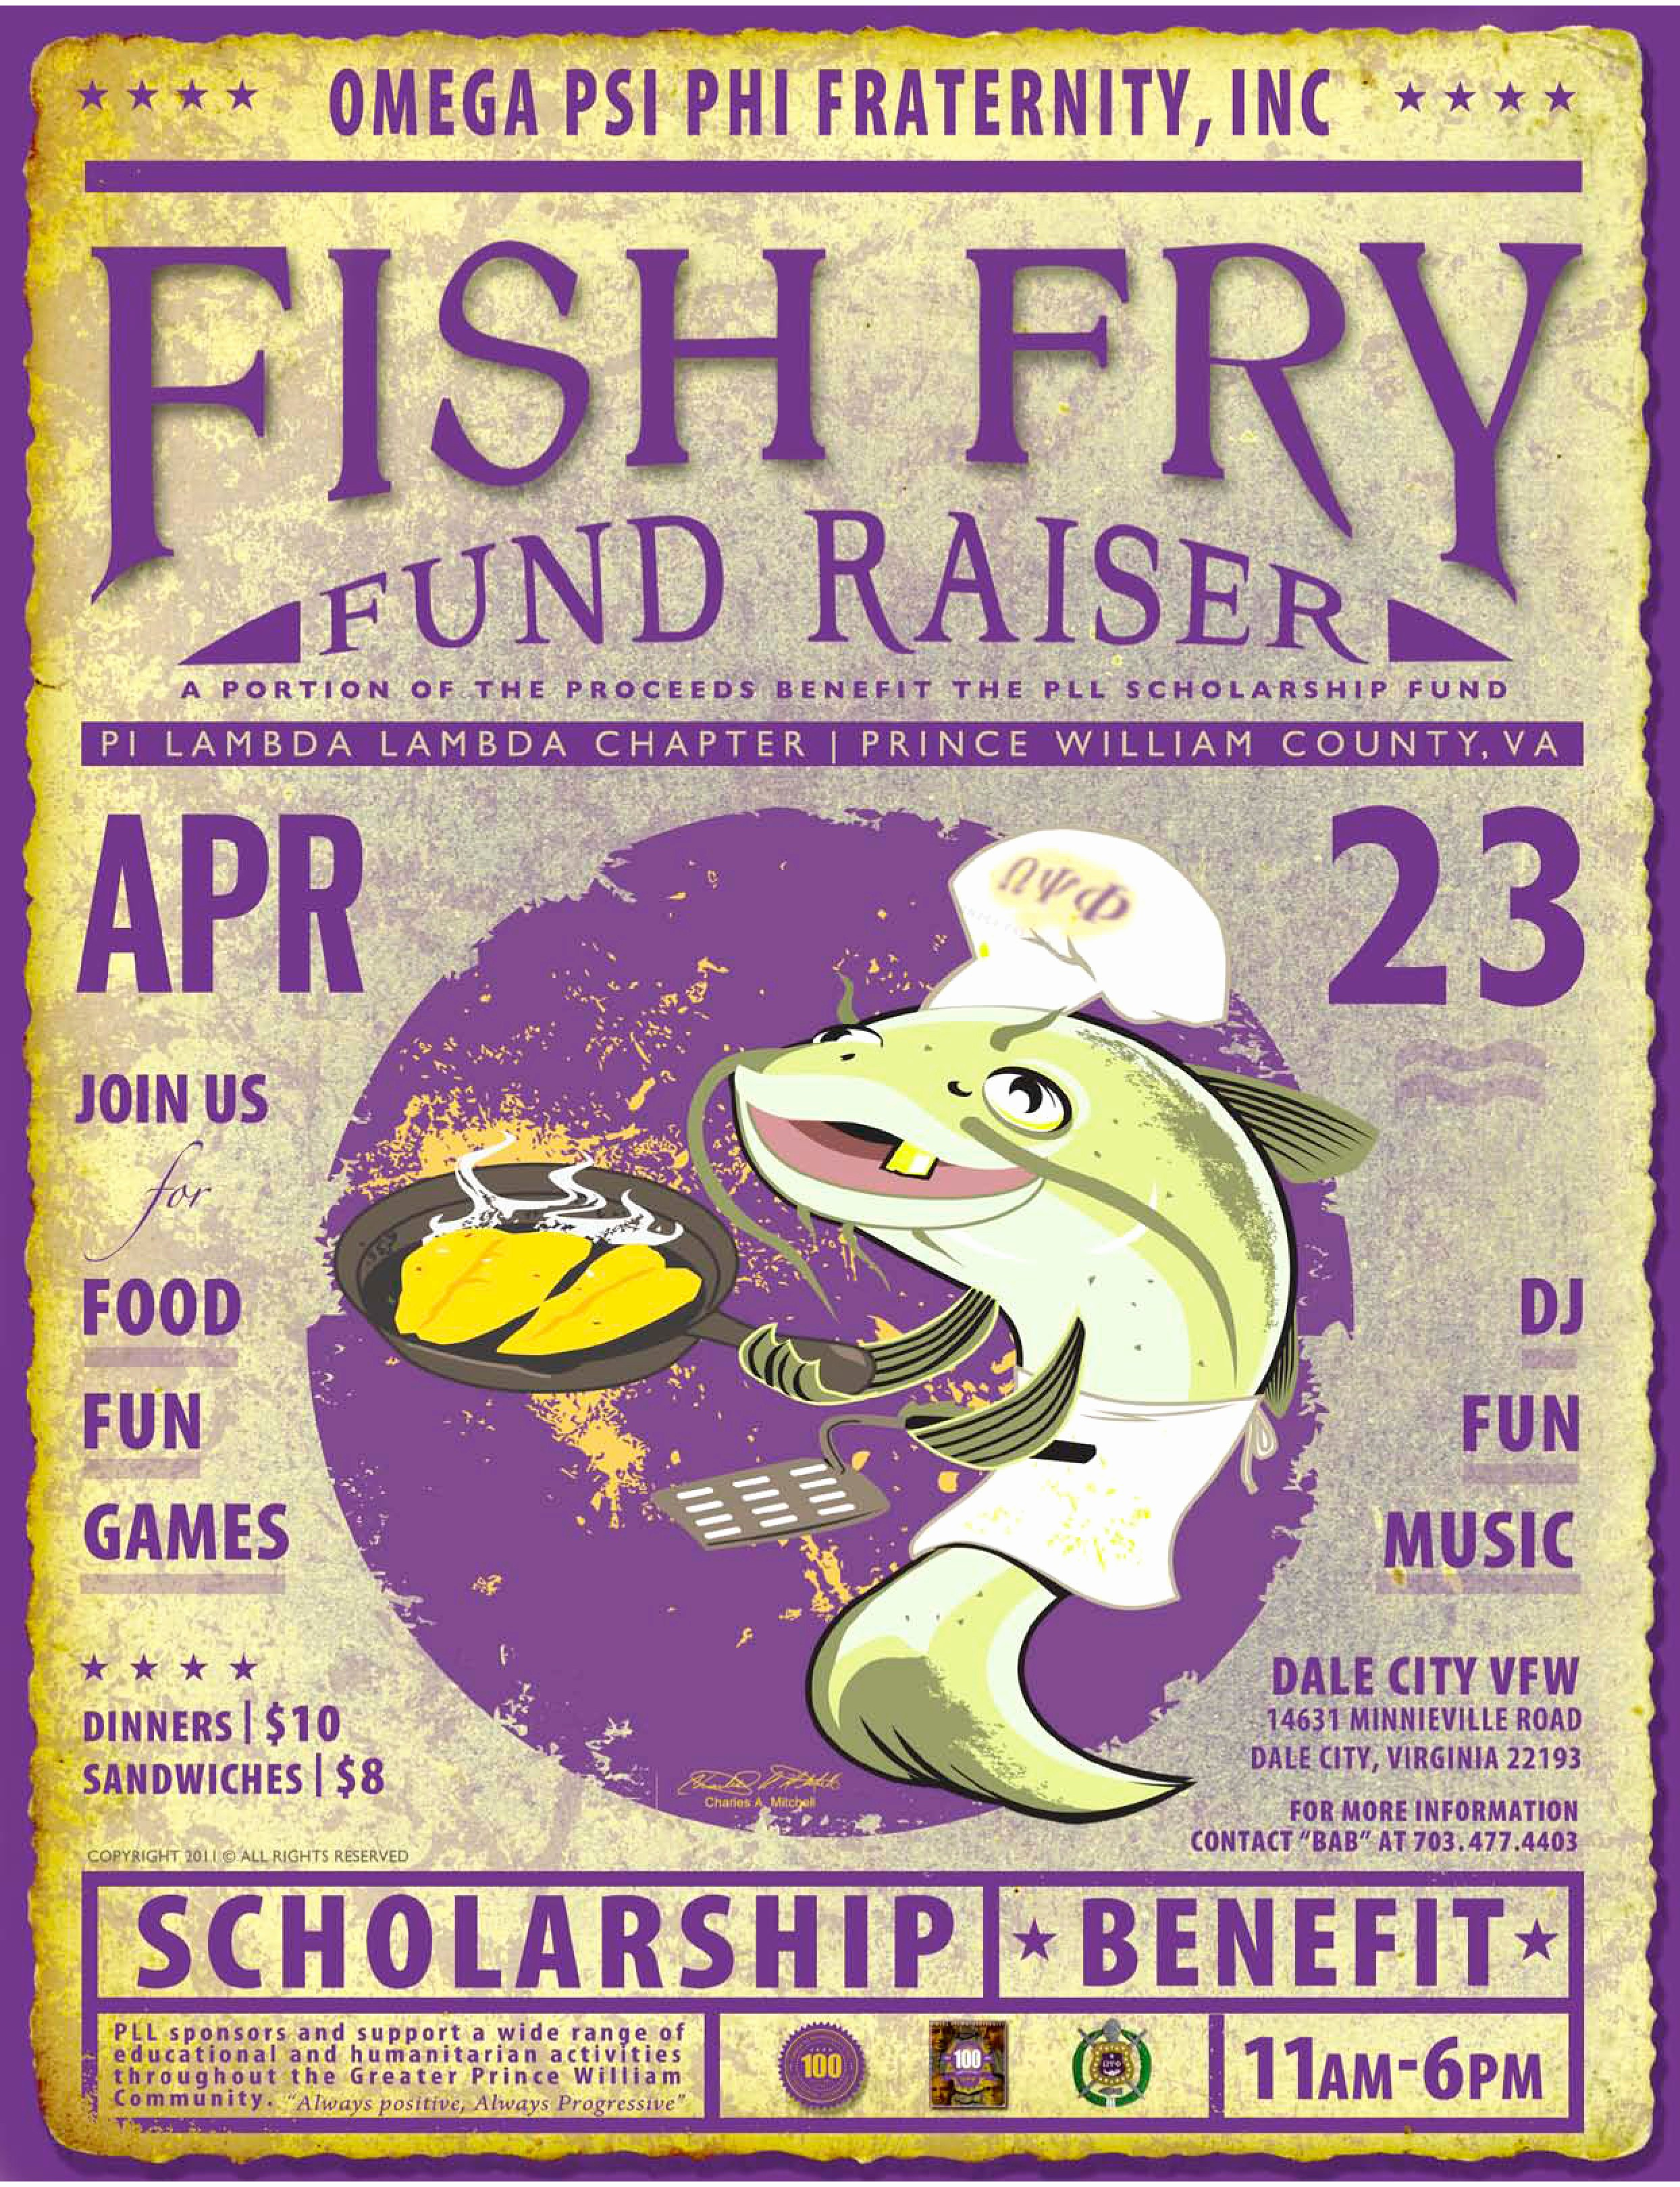 Free Fish Fry Flyer Templates Fresh 1000 Images About Fundraiser Ideas On Pinterest